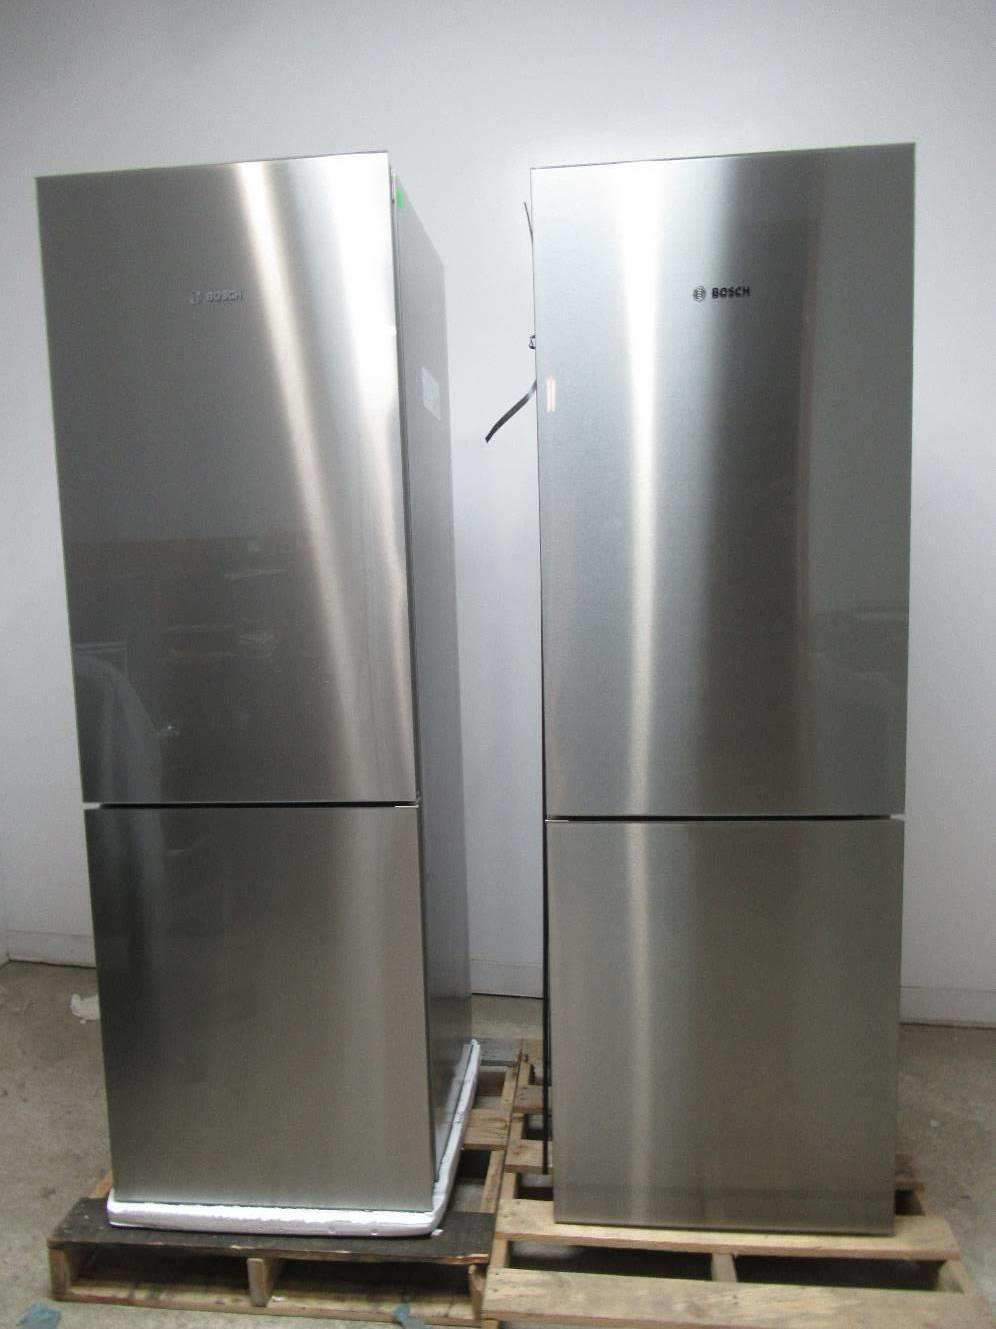 kit depth questions house countertops countertop refrigerators counter remodeling forum maple